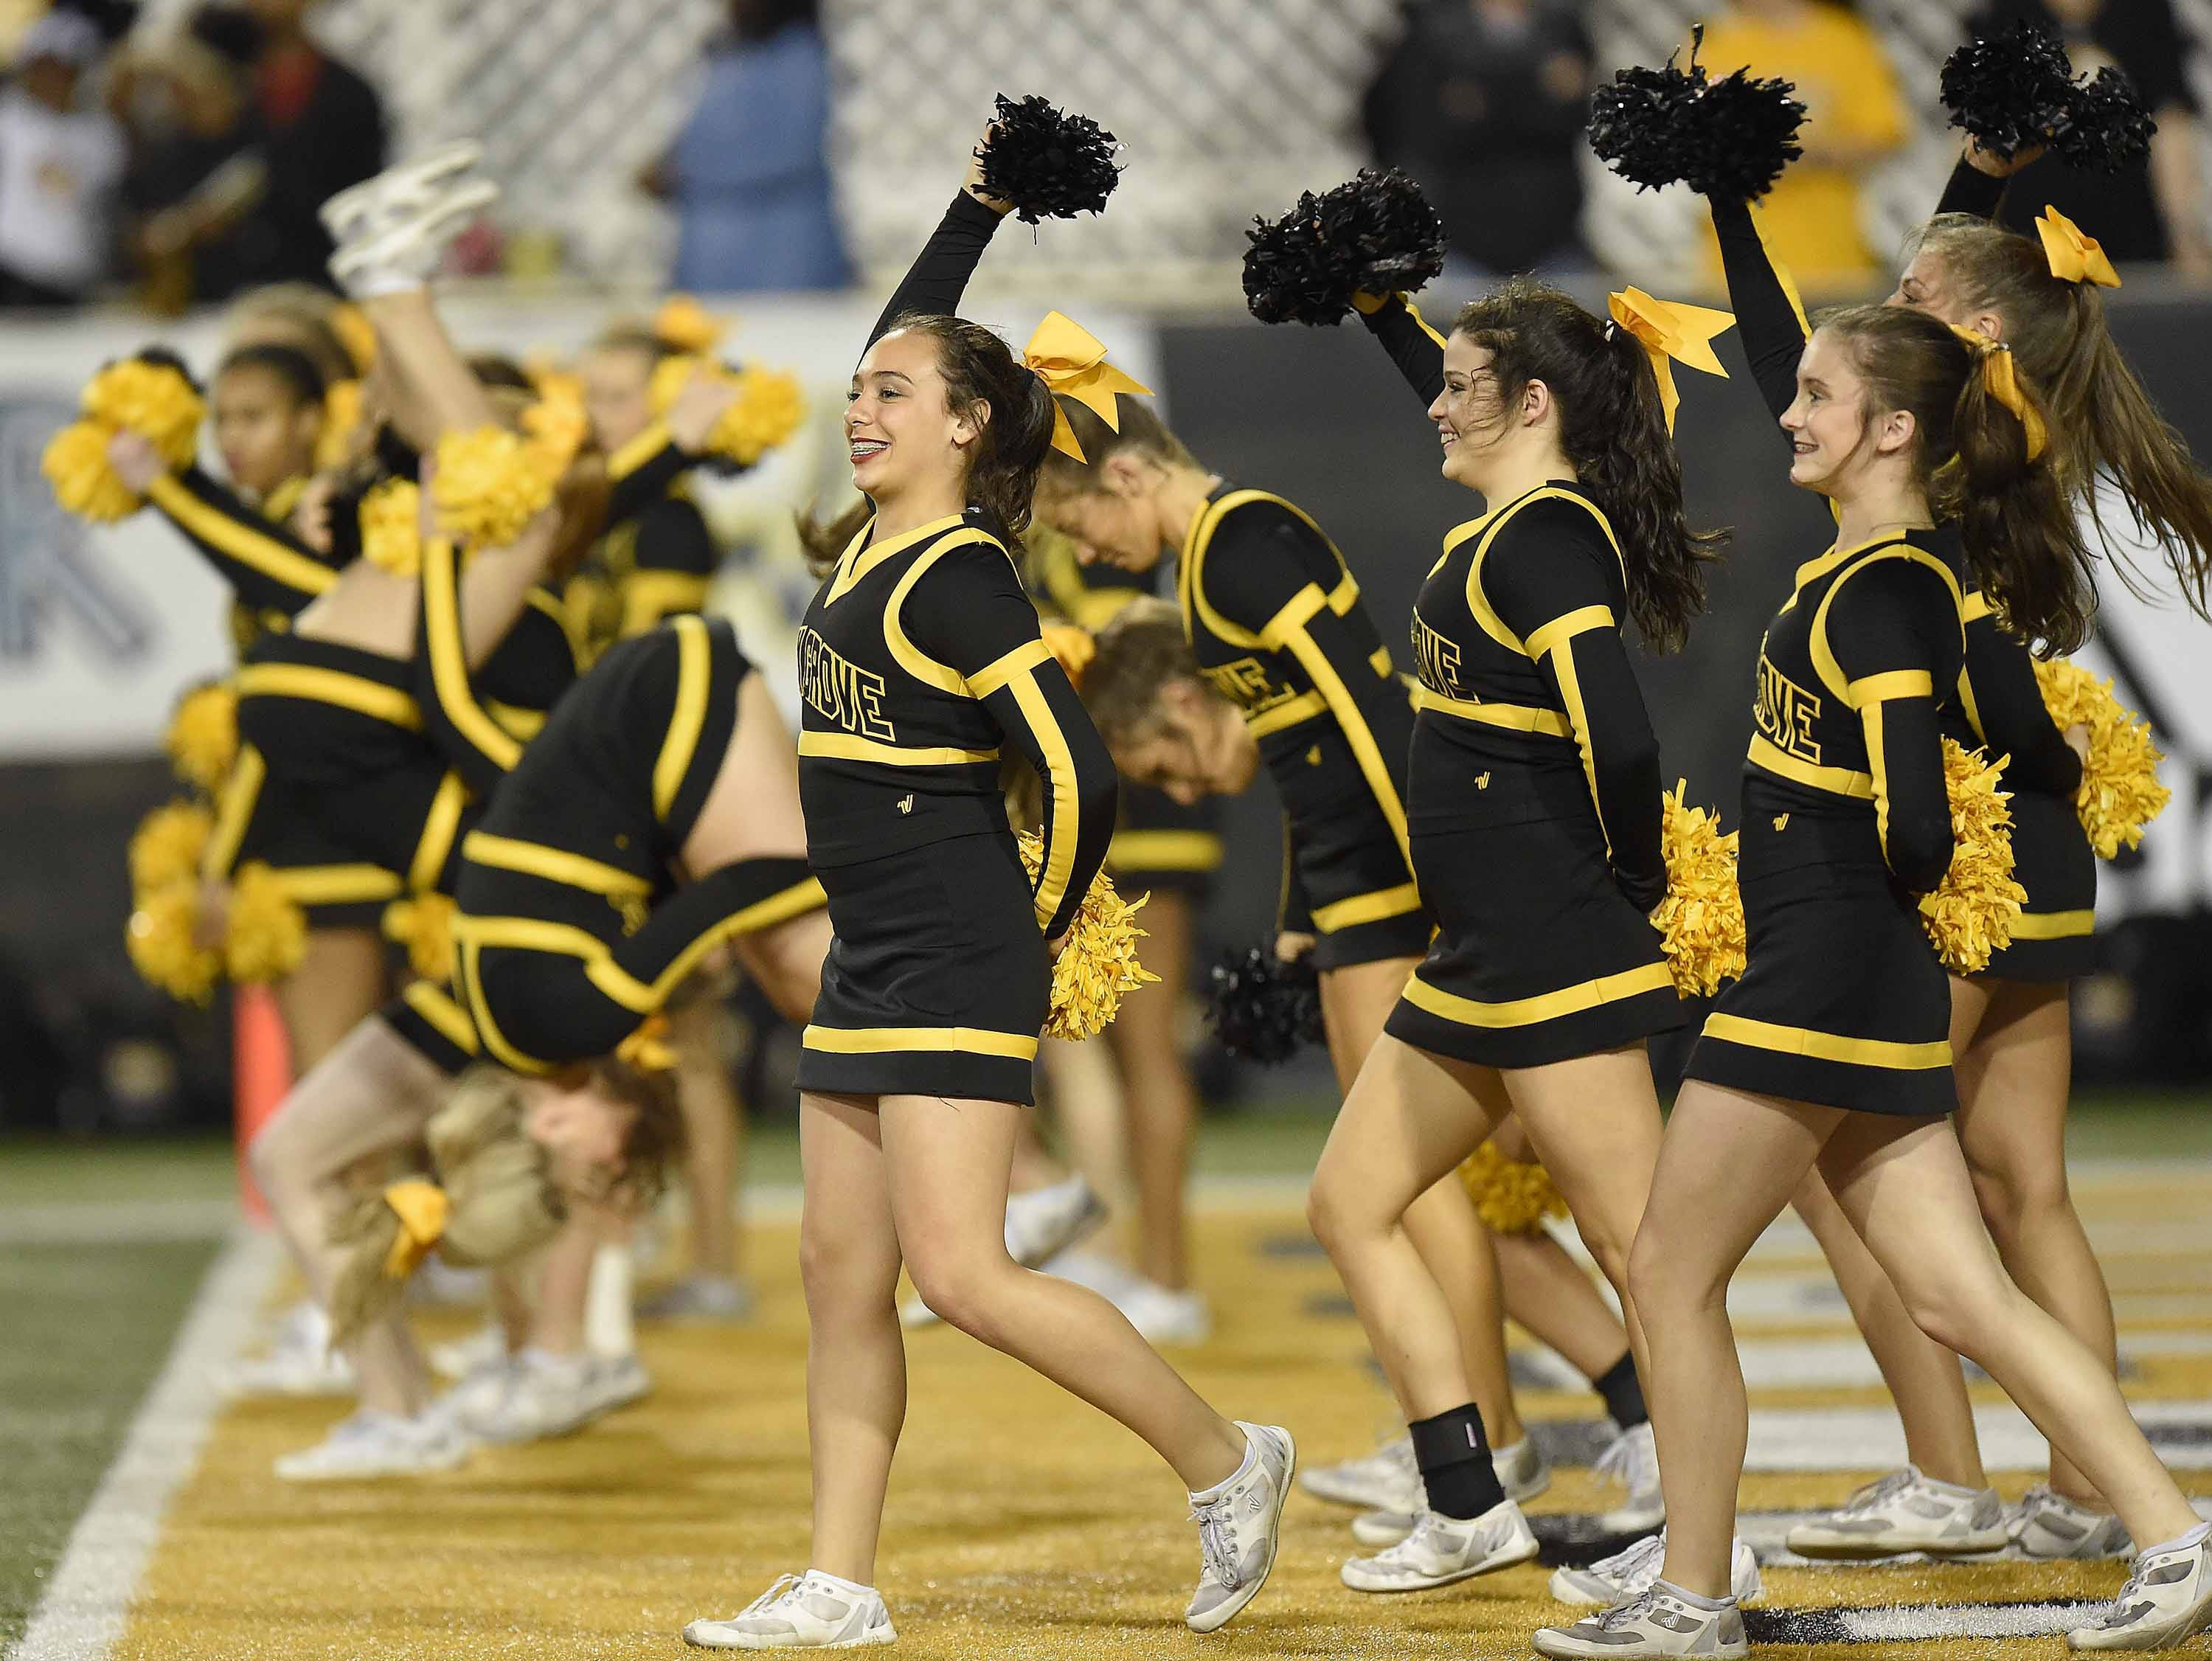 The Oak Grove cheerleaders do back flips to celebrate a Warriors touchdown on Friday, November 20, 2018, in the MHSAA BlueCross BlueShield Gridiron Classic High School Football Championships in M.M. Roberts Stadium on the University of Southern Mississippi campus in Hattiesburg, Miss.